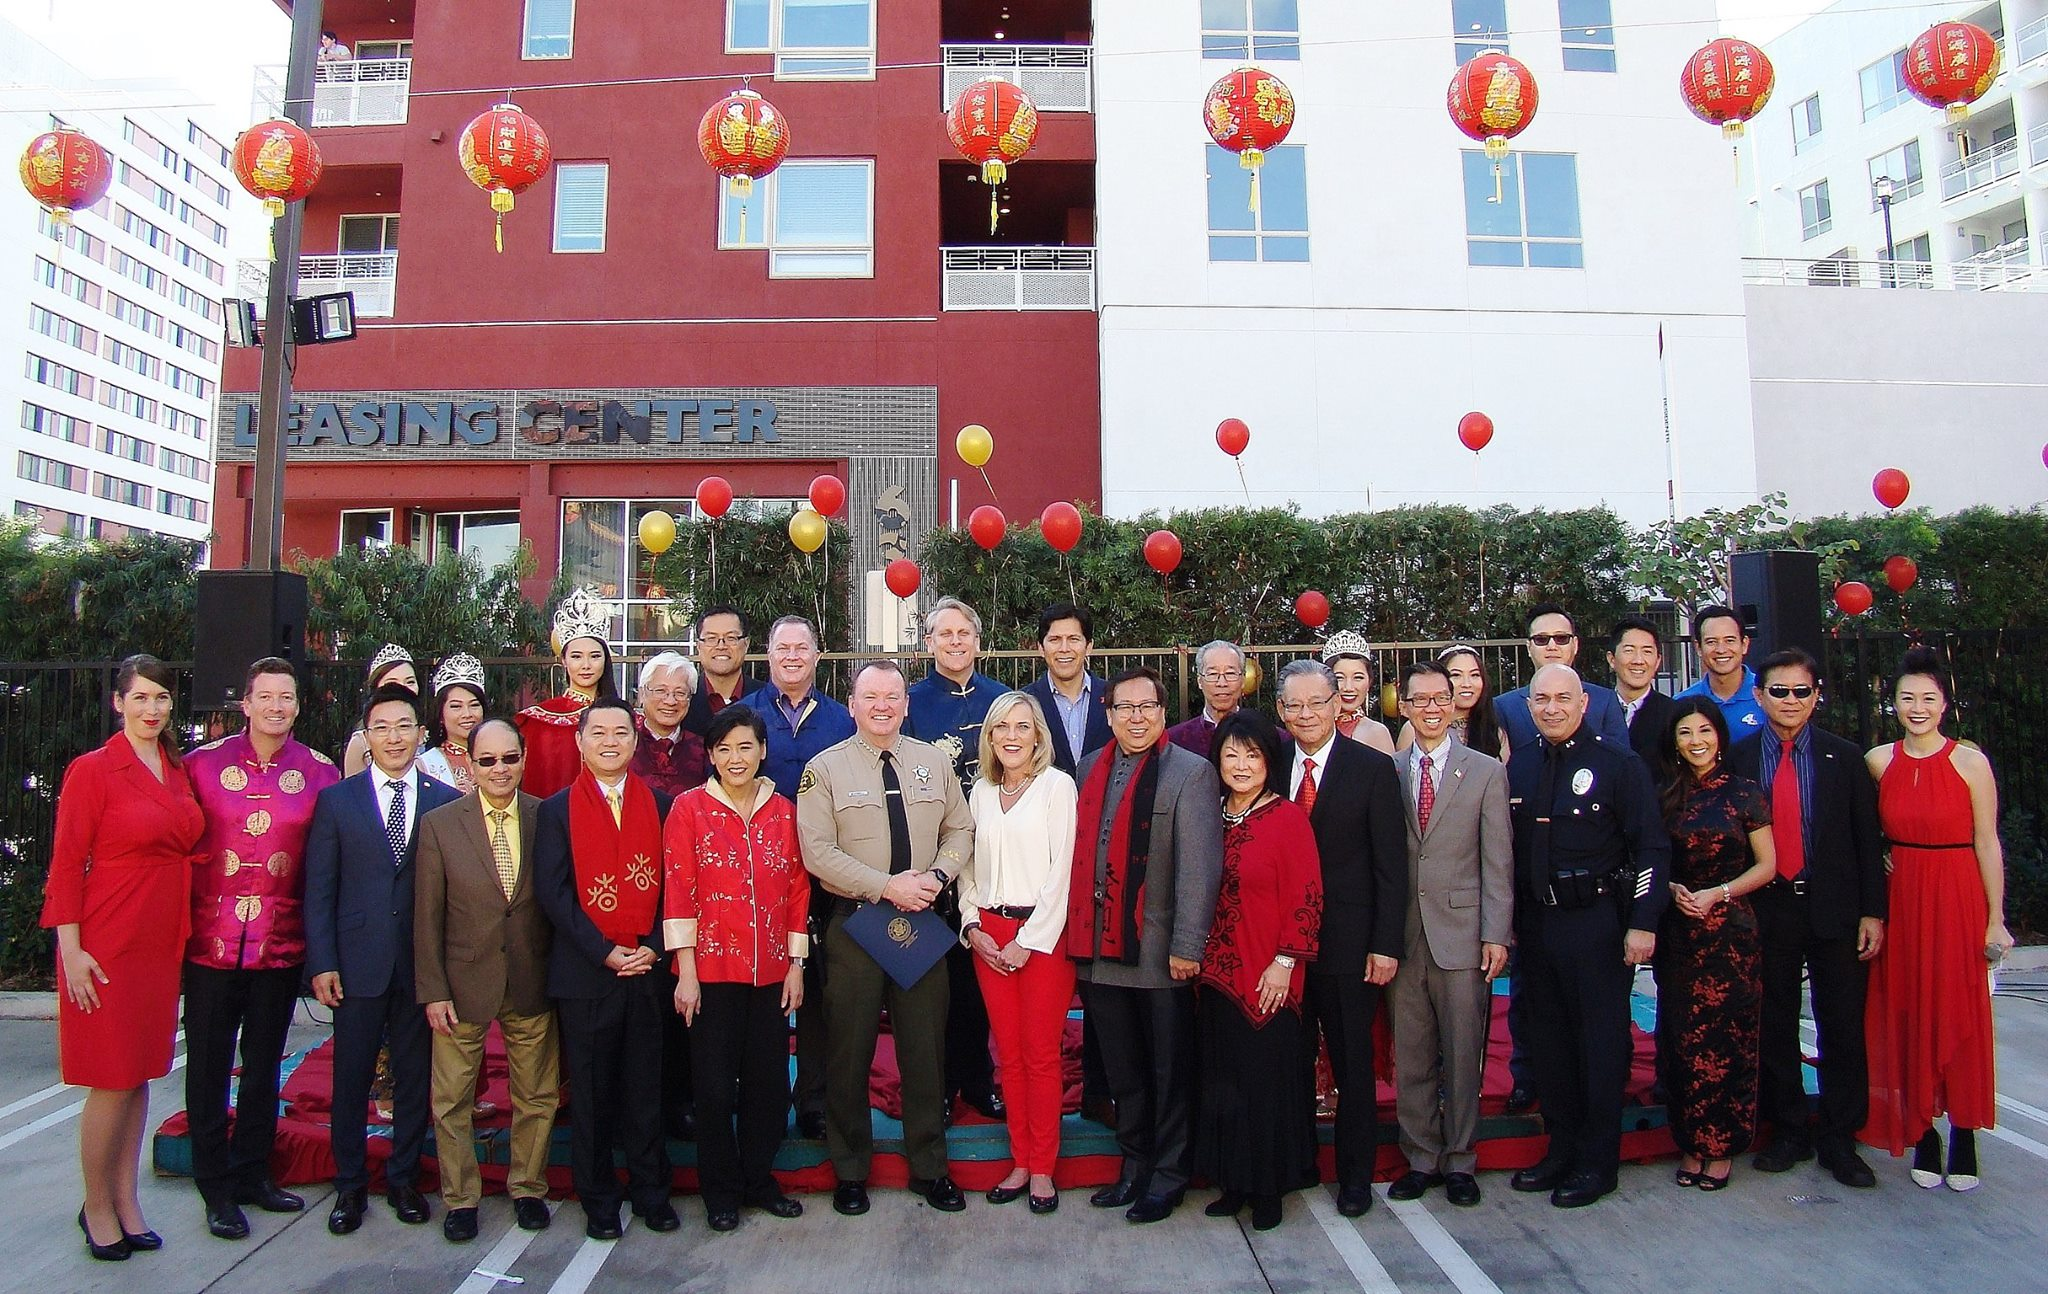 Public office holders, elected officials and community supporters at the VIP reception to kick off the 118th Golden Dragon Parade celebrating Year of the Rooster.jpg